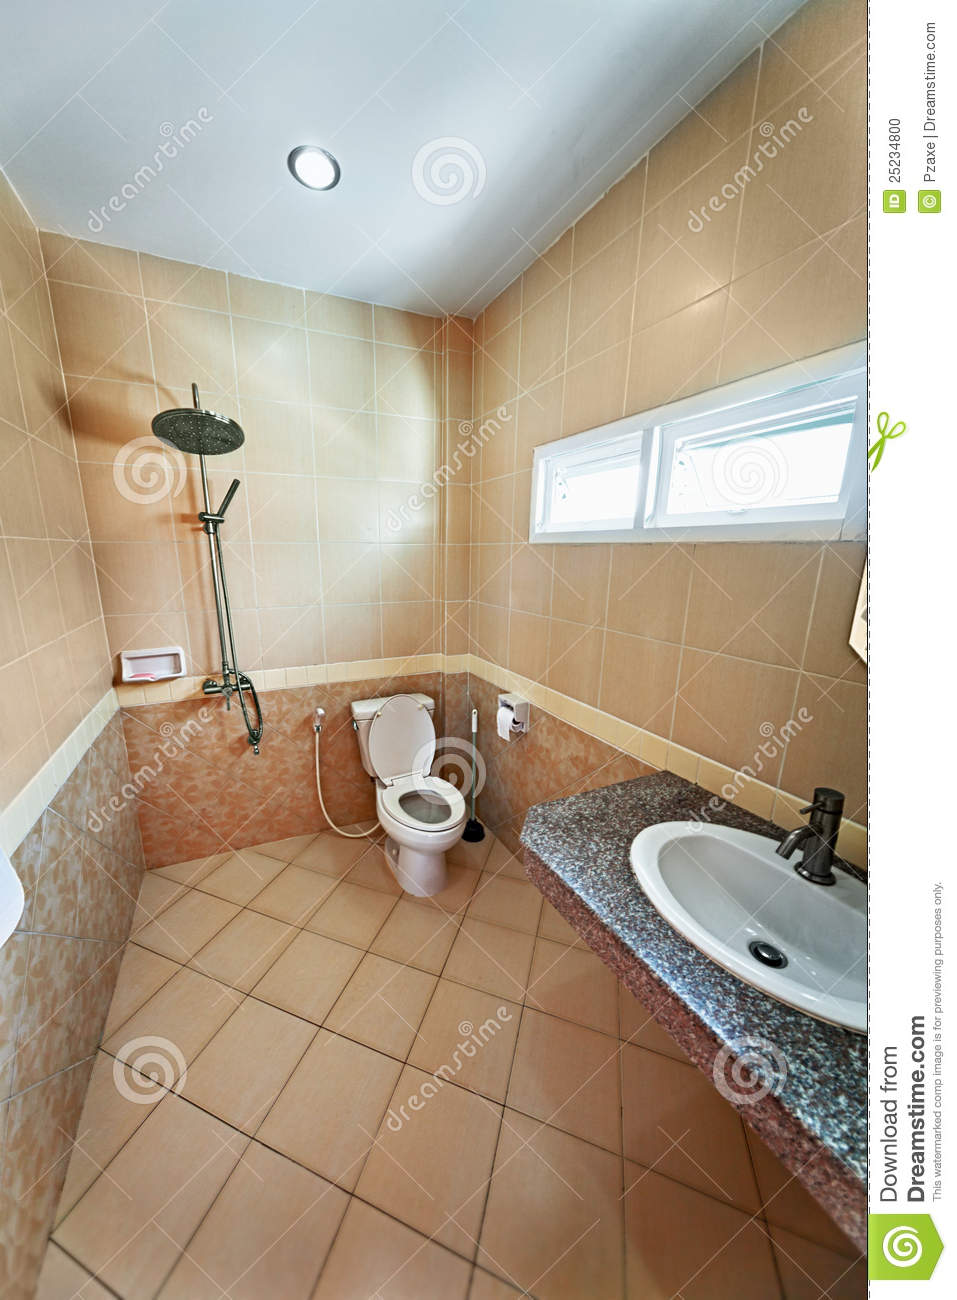 Iinterior of beige bathroom with shower stock photo for Salle de bain petite moderne